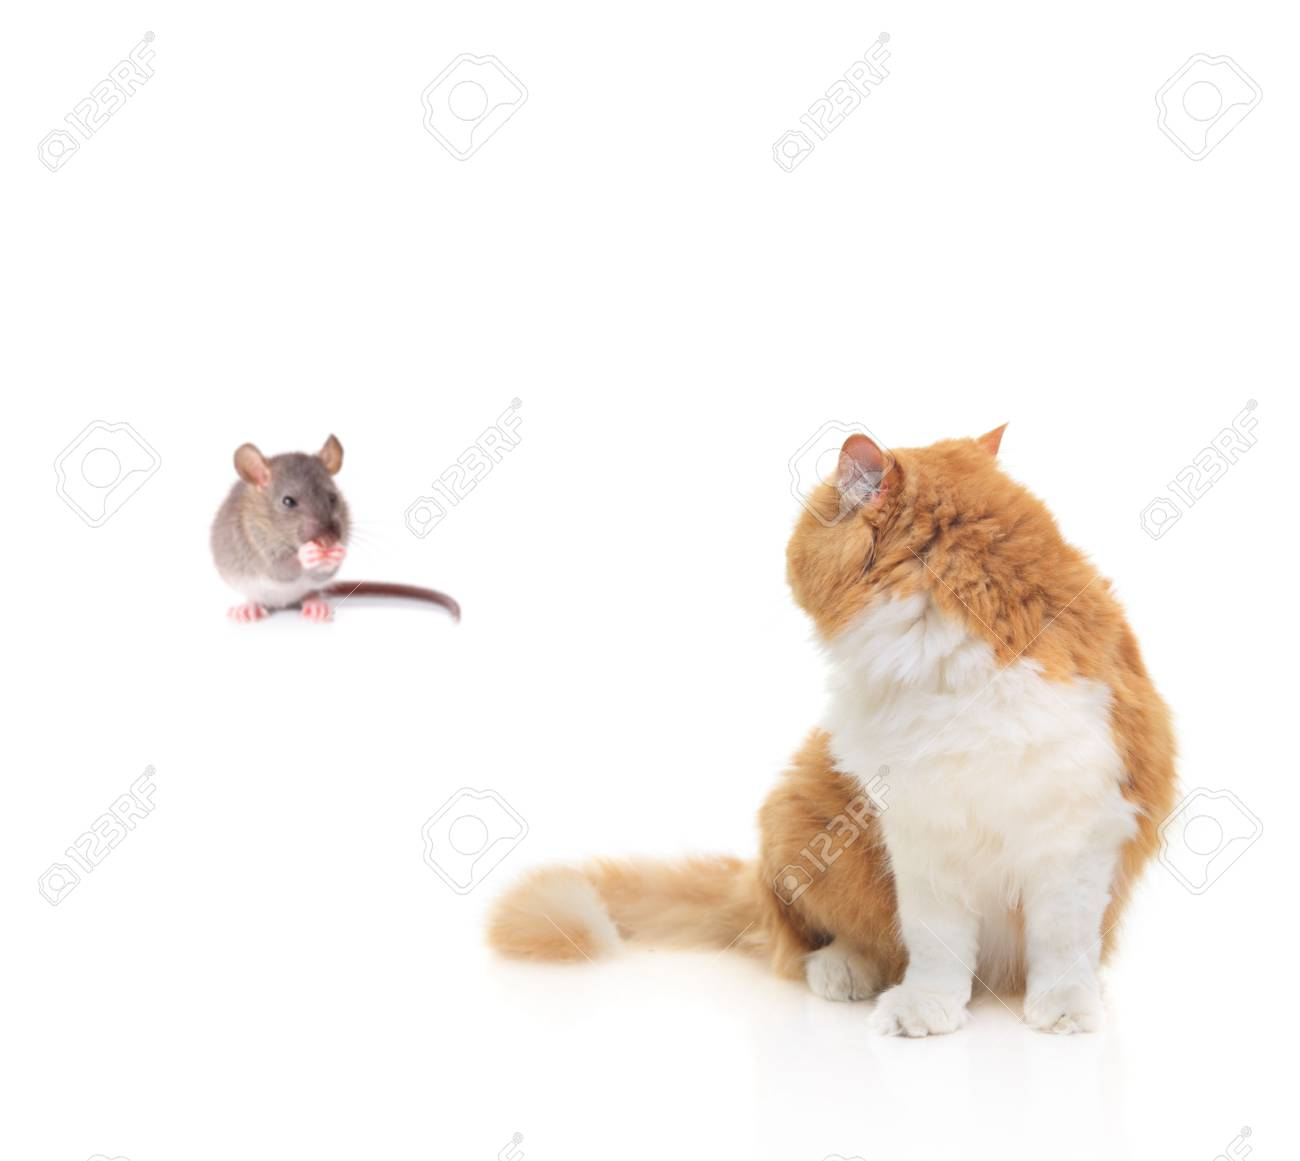 Cat watching a mouse isolated against white background Stock Photo - 3726889